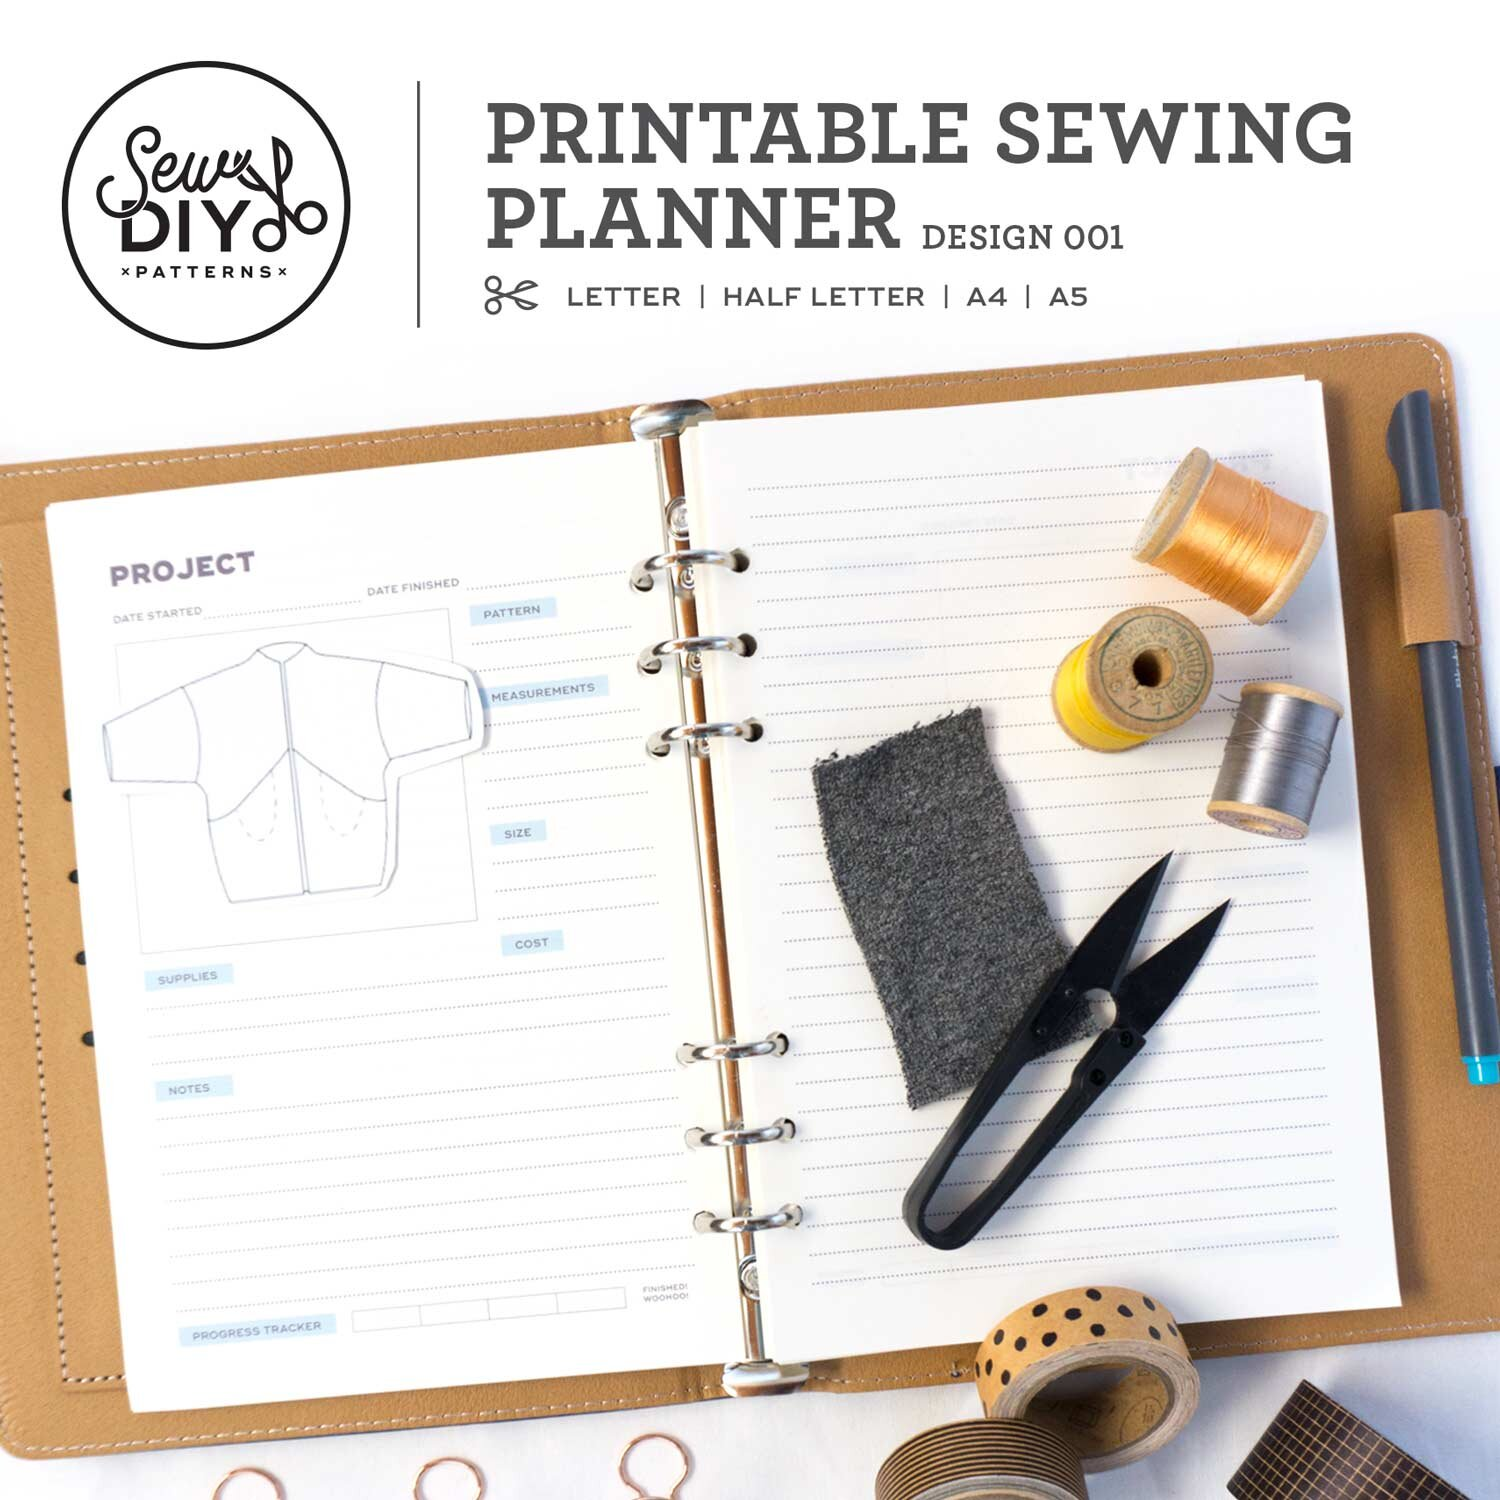 photo about Printable Project Planner identified as Printable Sewing Planner PDF Down load Sew Do it yourself